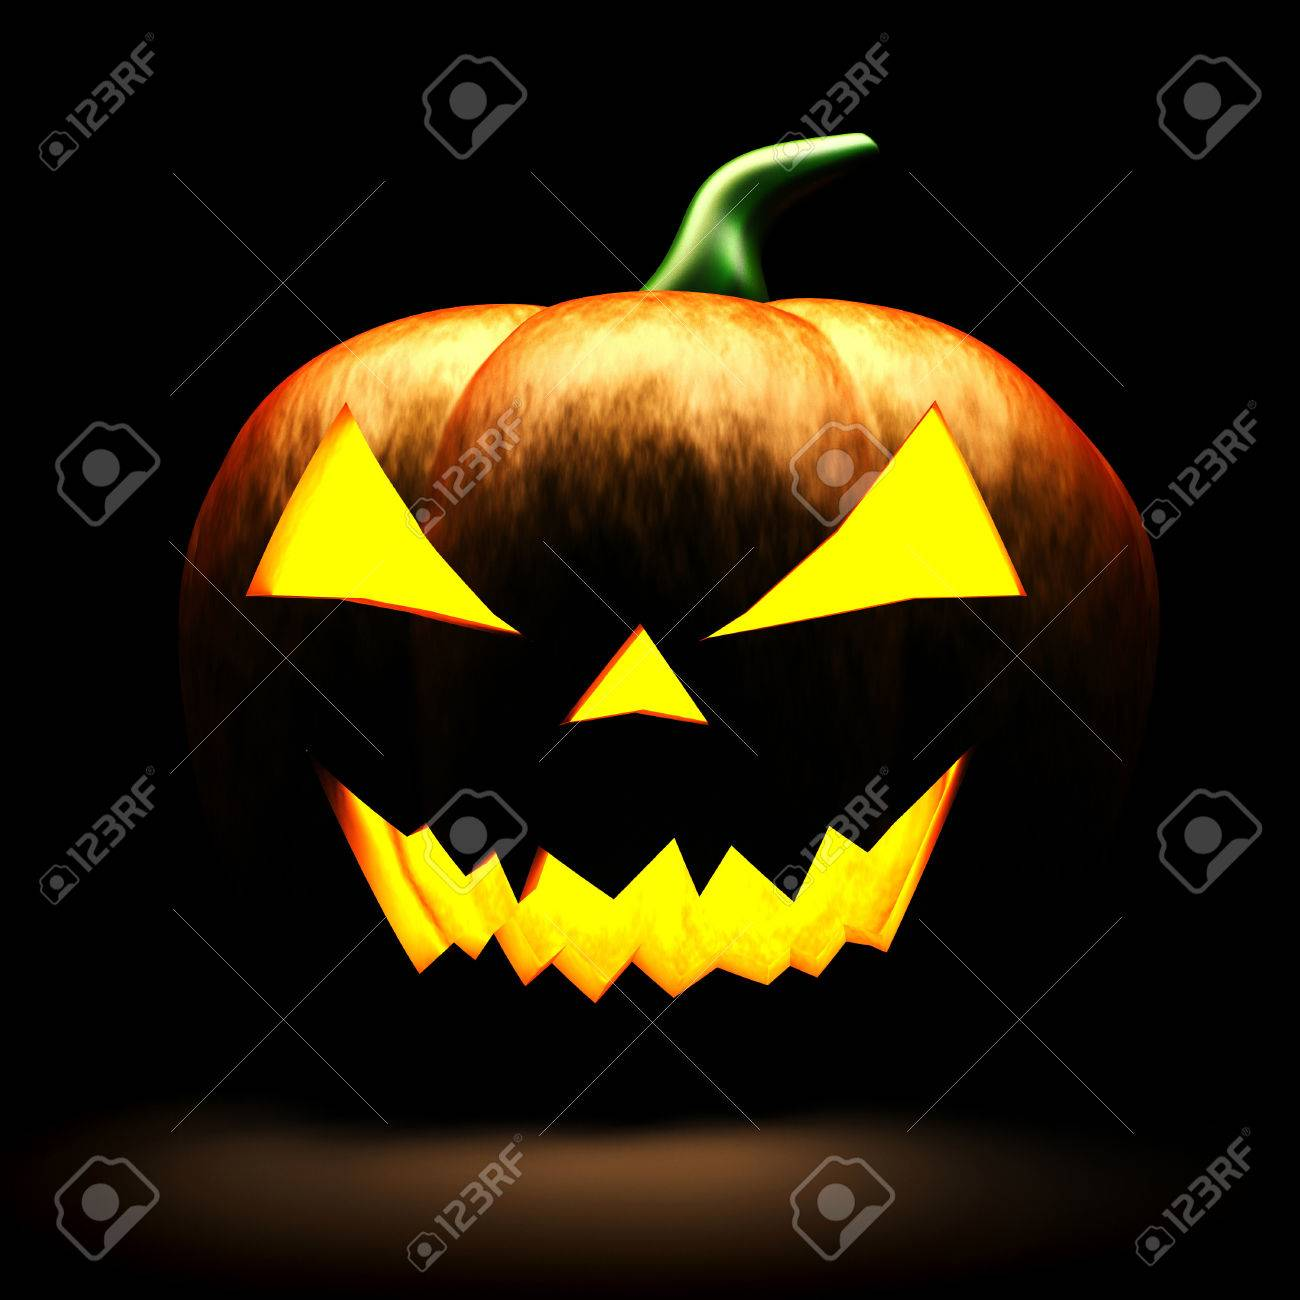 3d scary halloween pumpkin on black background stock photo